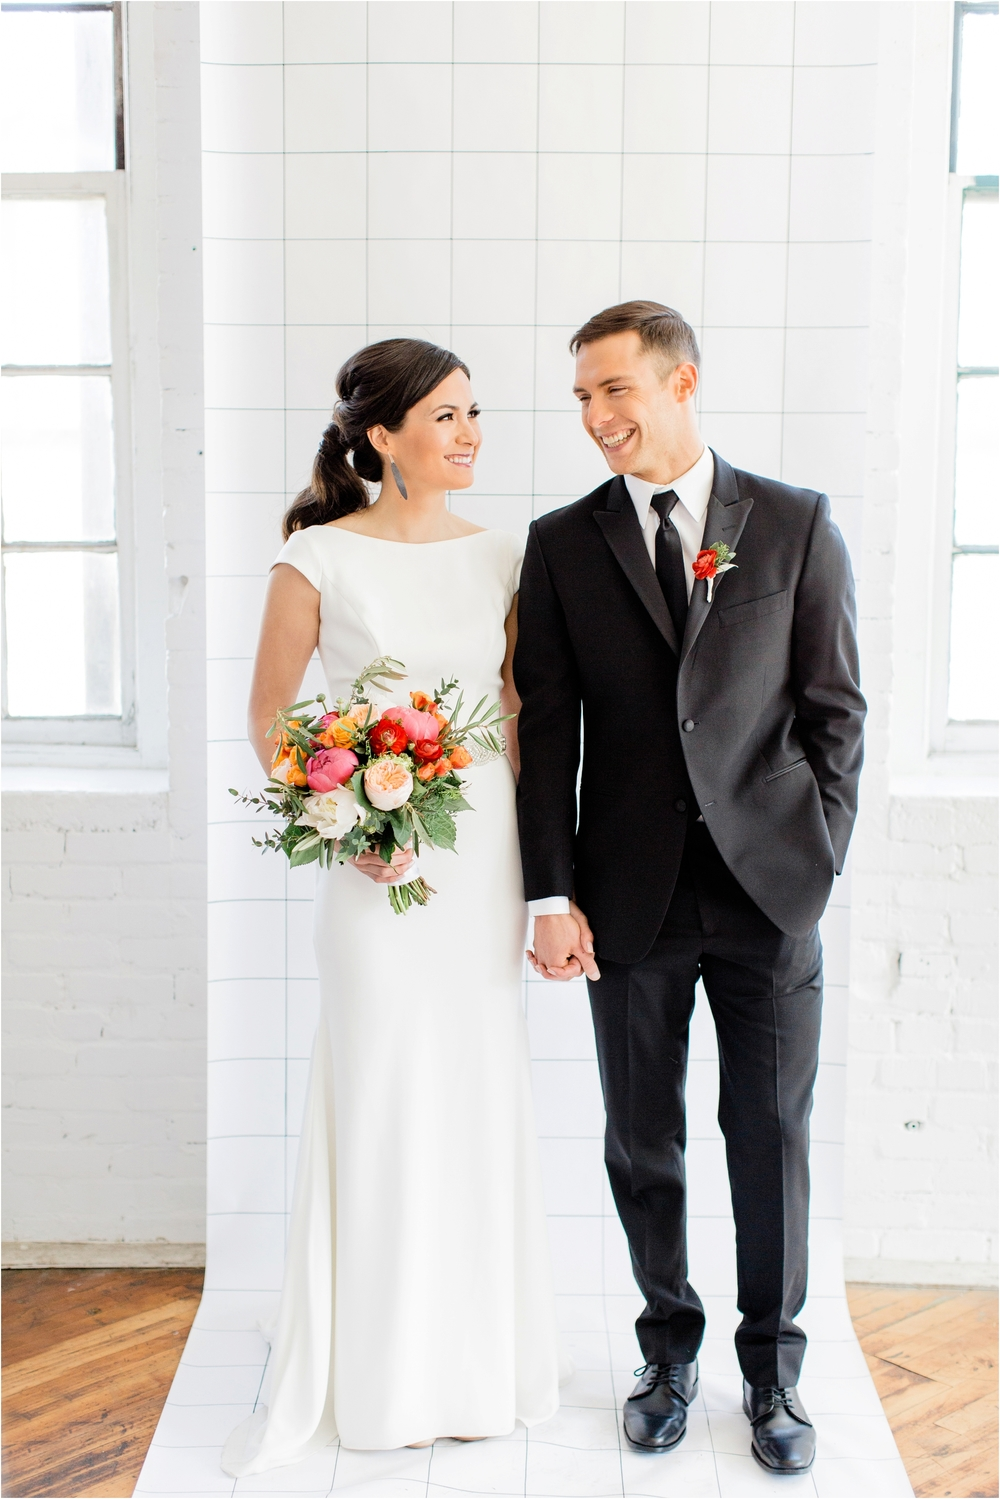 Grand Rapids, MI Minimalist Modern Wedding Inspiration